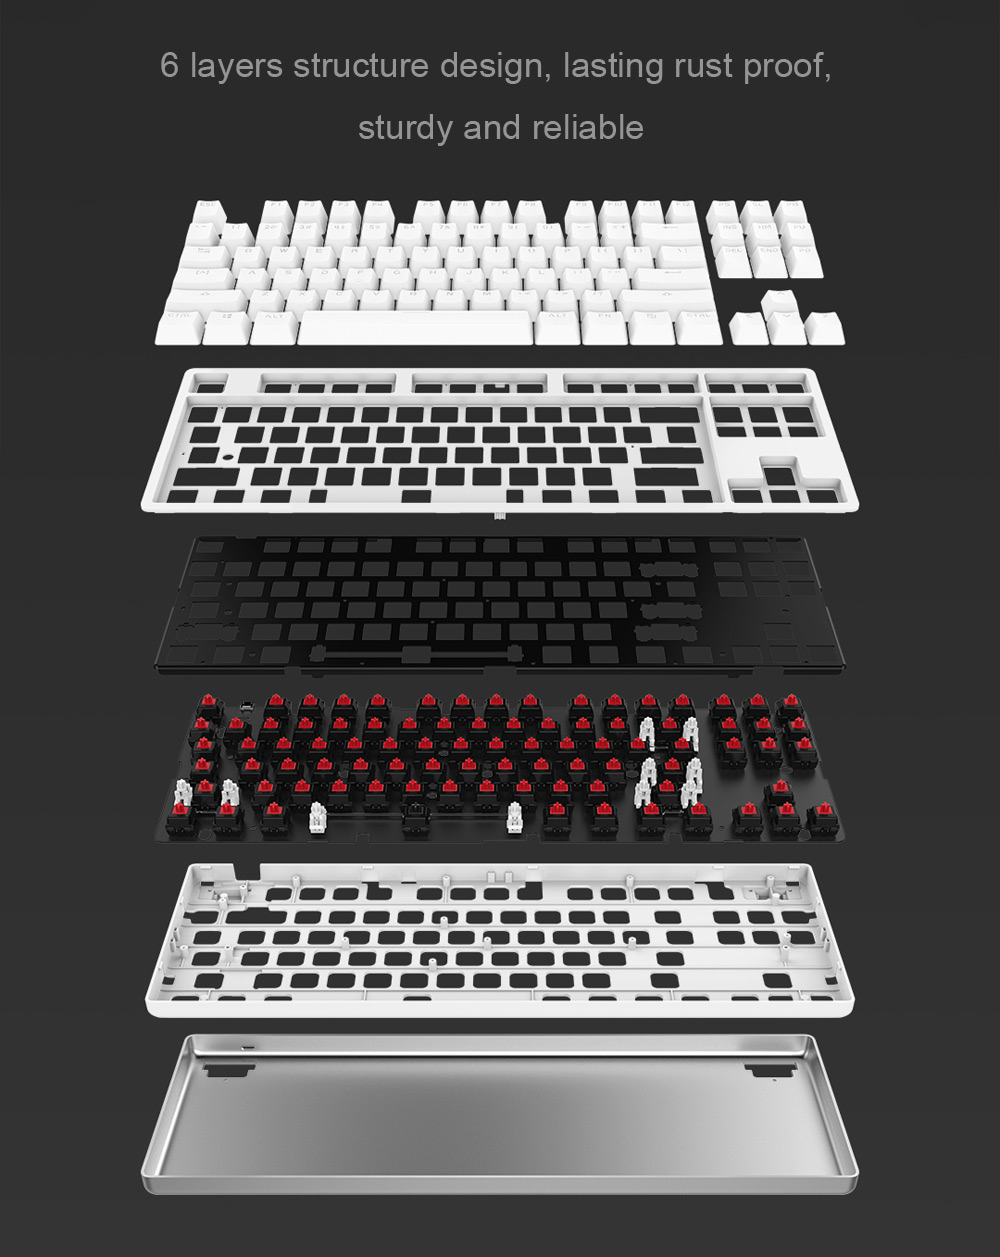 Yuemi MK01 NKRO Mechanical Keyboard with 87 Key Red Switch Backlight- White